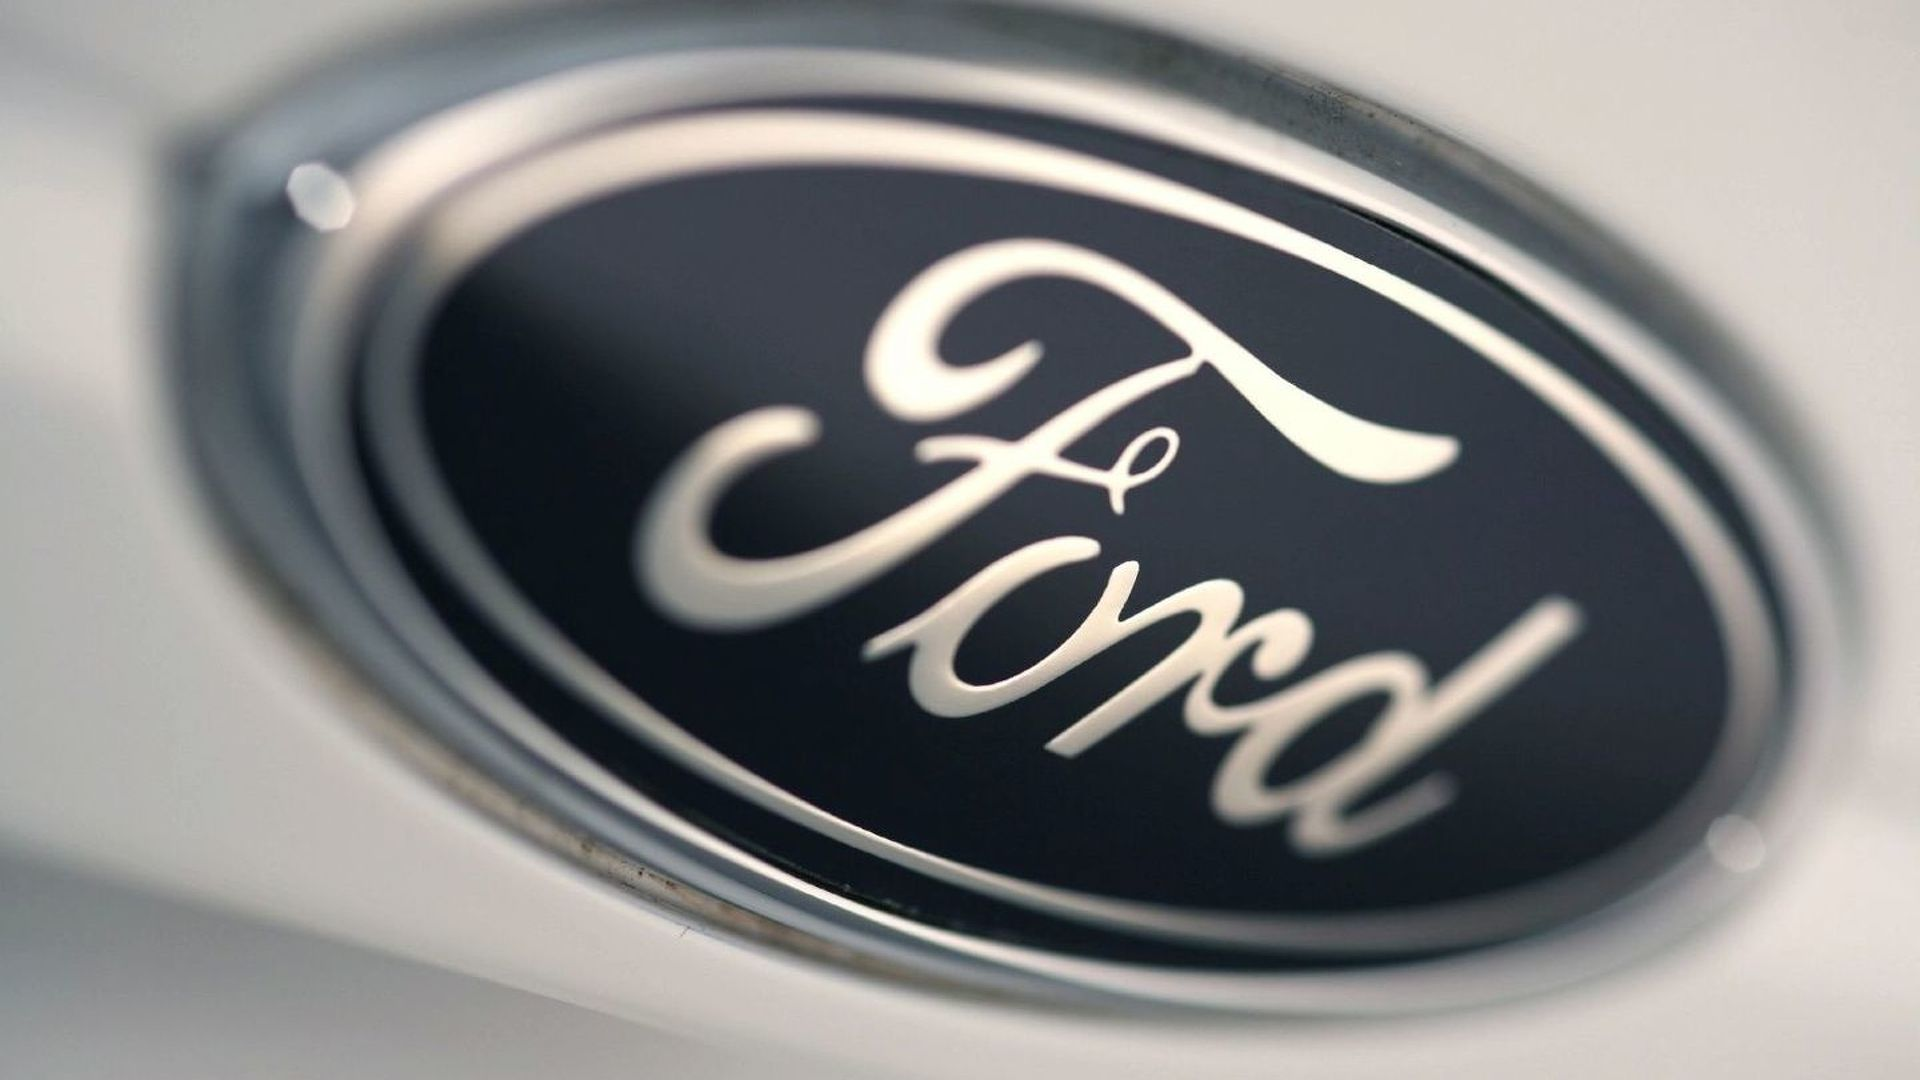 Ford wants to register 'inflatable light urban vehicle' trademark